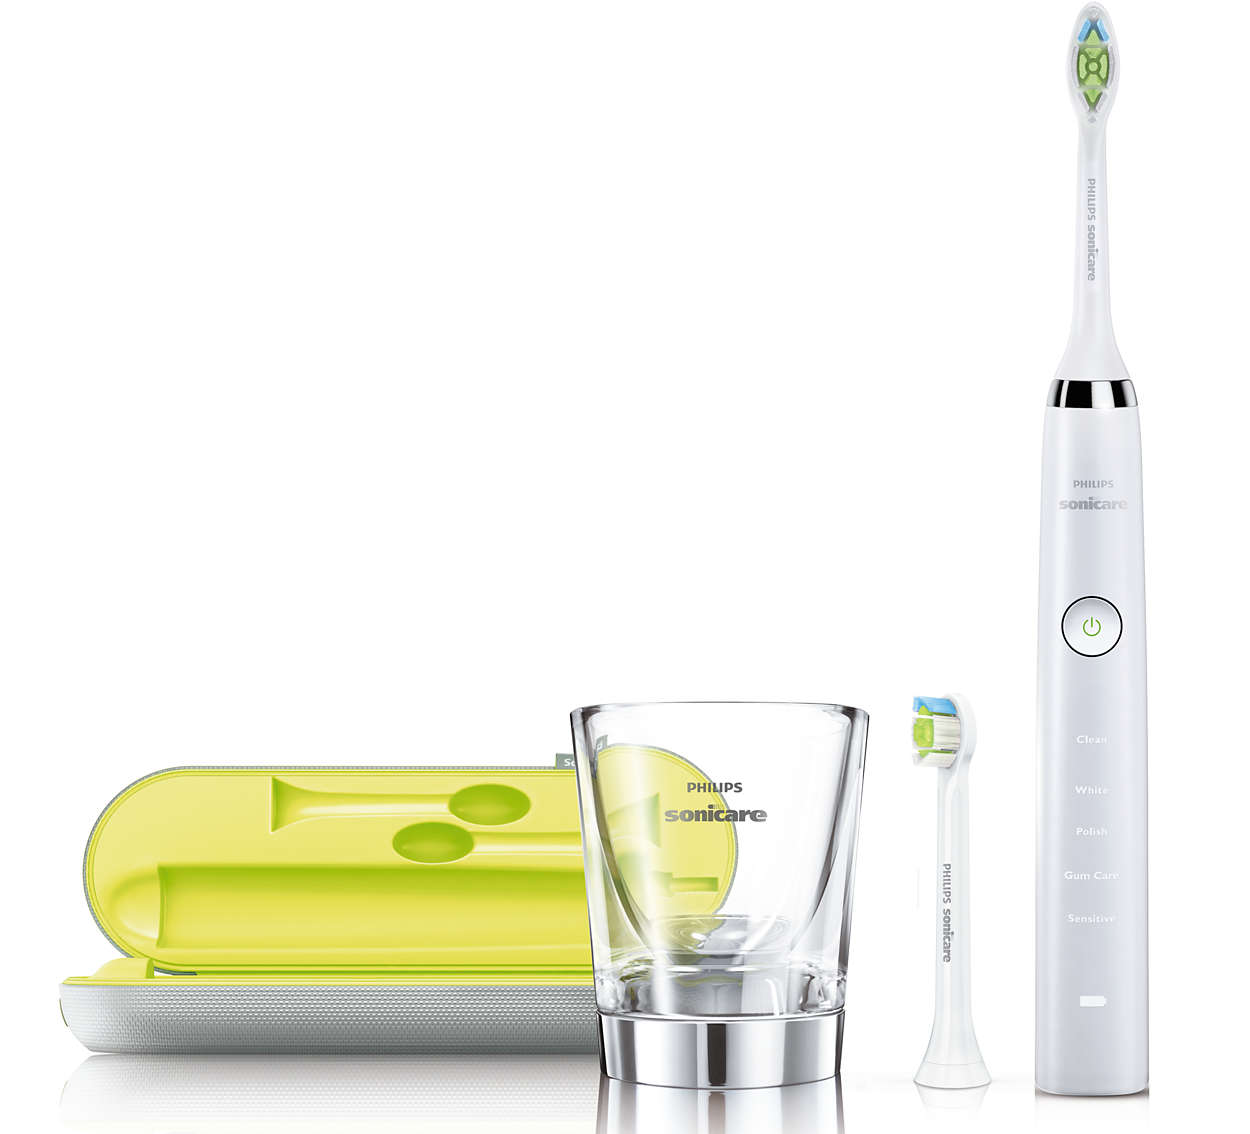 Free delivery and returns on eligible orders of £20 or more. Buy Oral-B Smart 4 N CrossAction Electric Toothbrush Rechargeable Powered By Braun, 1 Connected Handle, 3 Modes Including Whitening and Sensitive, 2 Toothbrush Heads, 2 Pin UK Plug at Amazon UK.